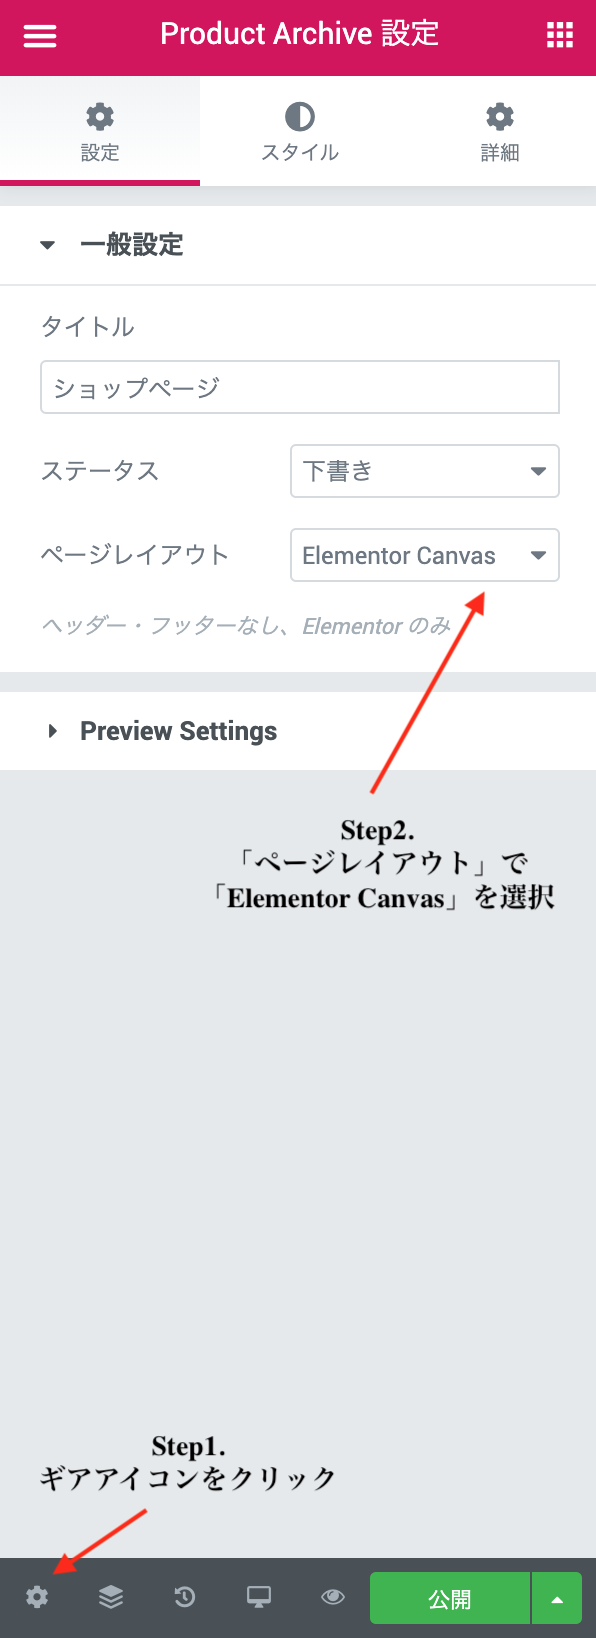 Elementor Canvasを選択 1